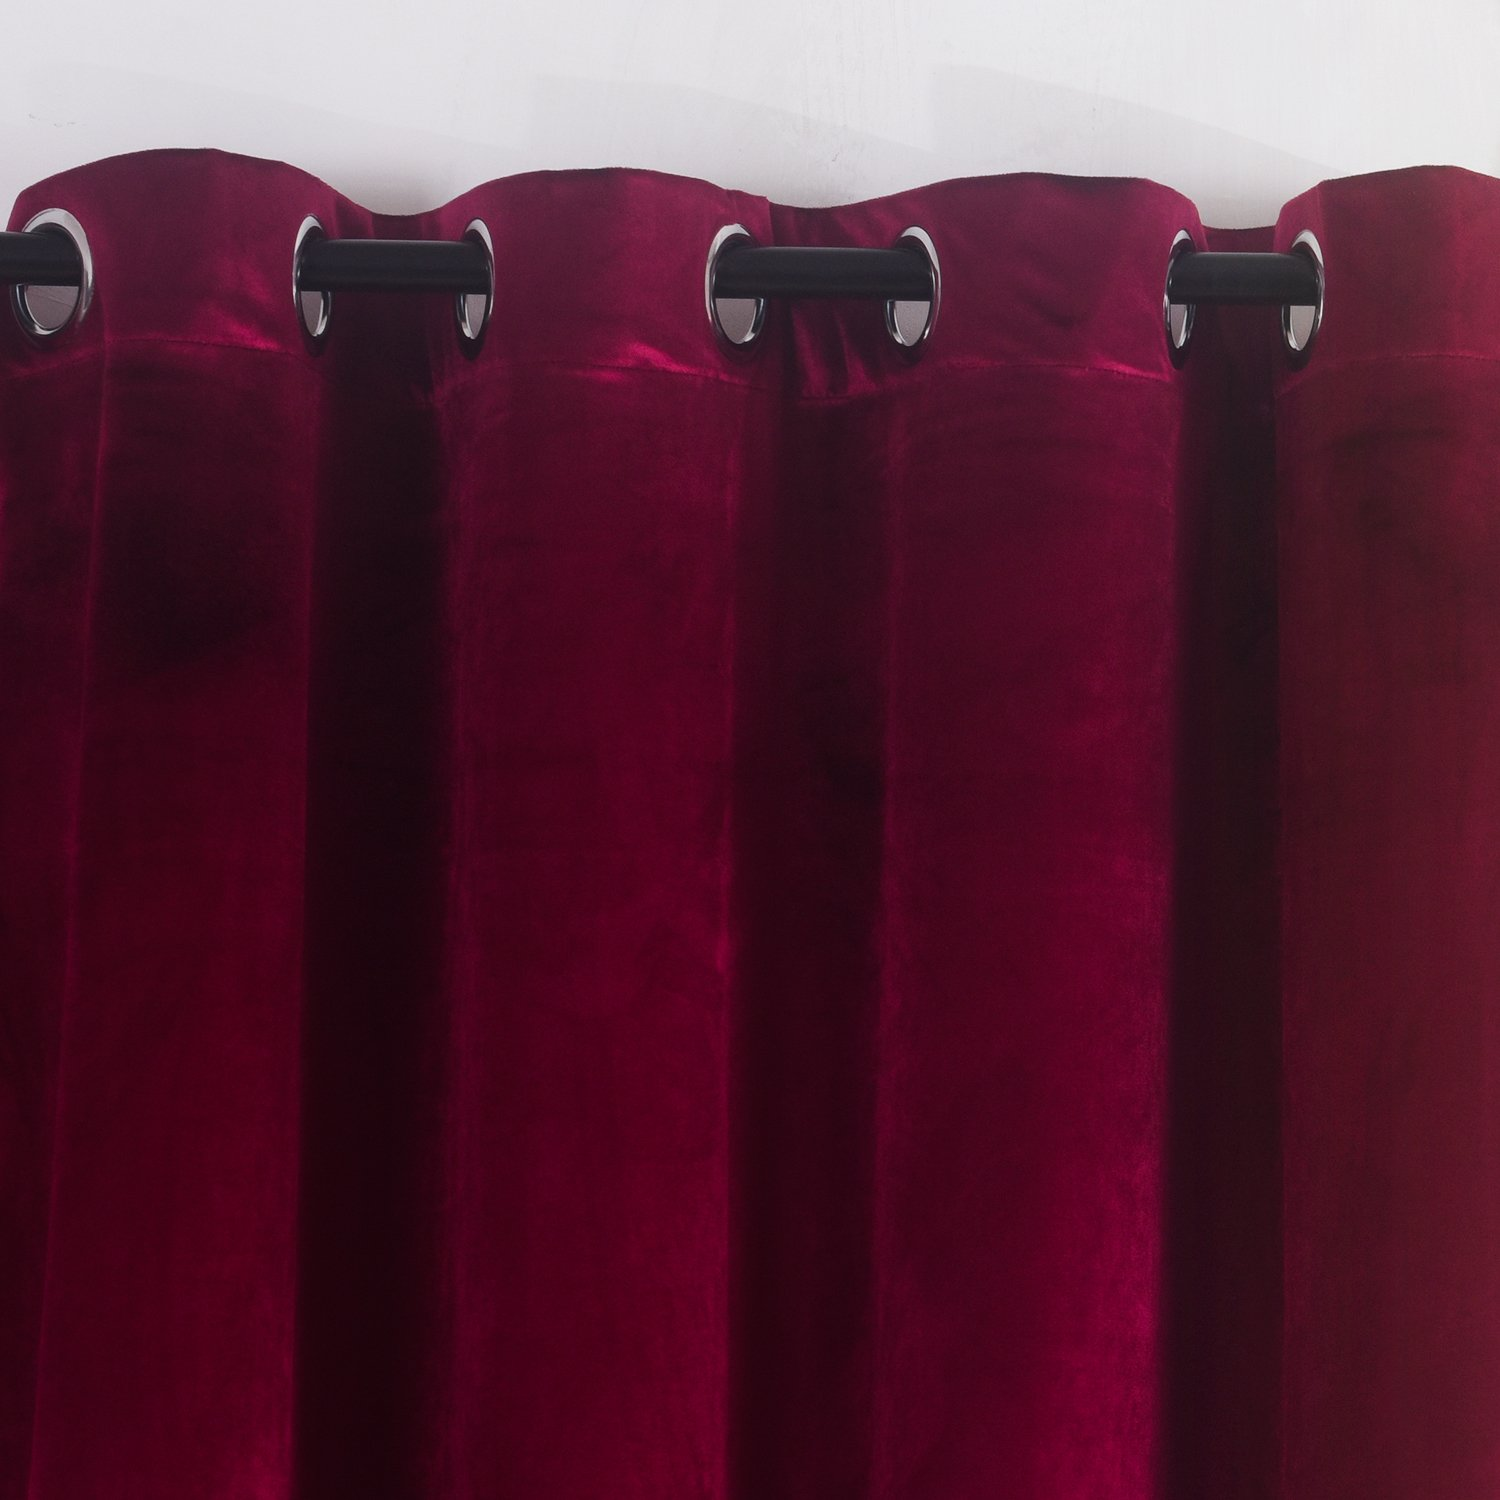 Maroon Curtains For Living Room Burgundy Bedding Curtains Ease Bedding With Style